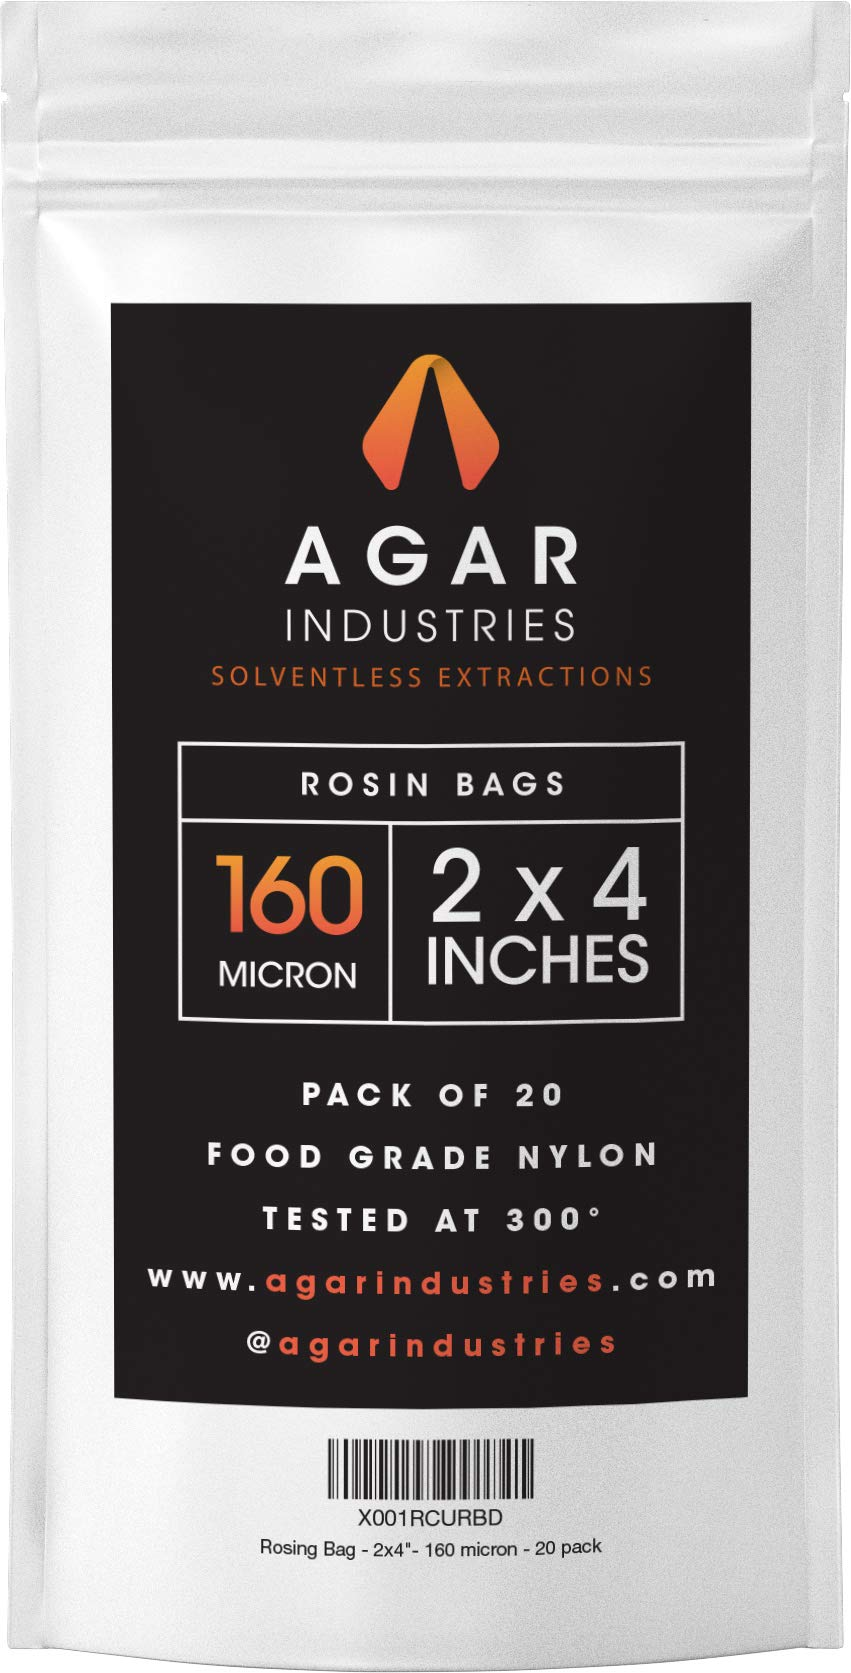 Agar Industries - Rosin Press Filter Bag -Screens for Solventeless Oil Extractions in Rosin Tech (20 pack, 2x4 in. 160 micron)